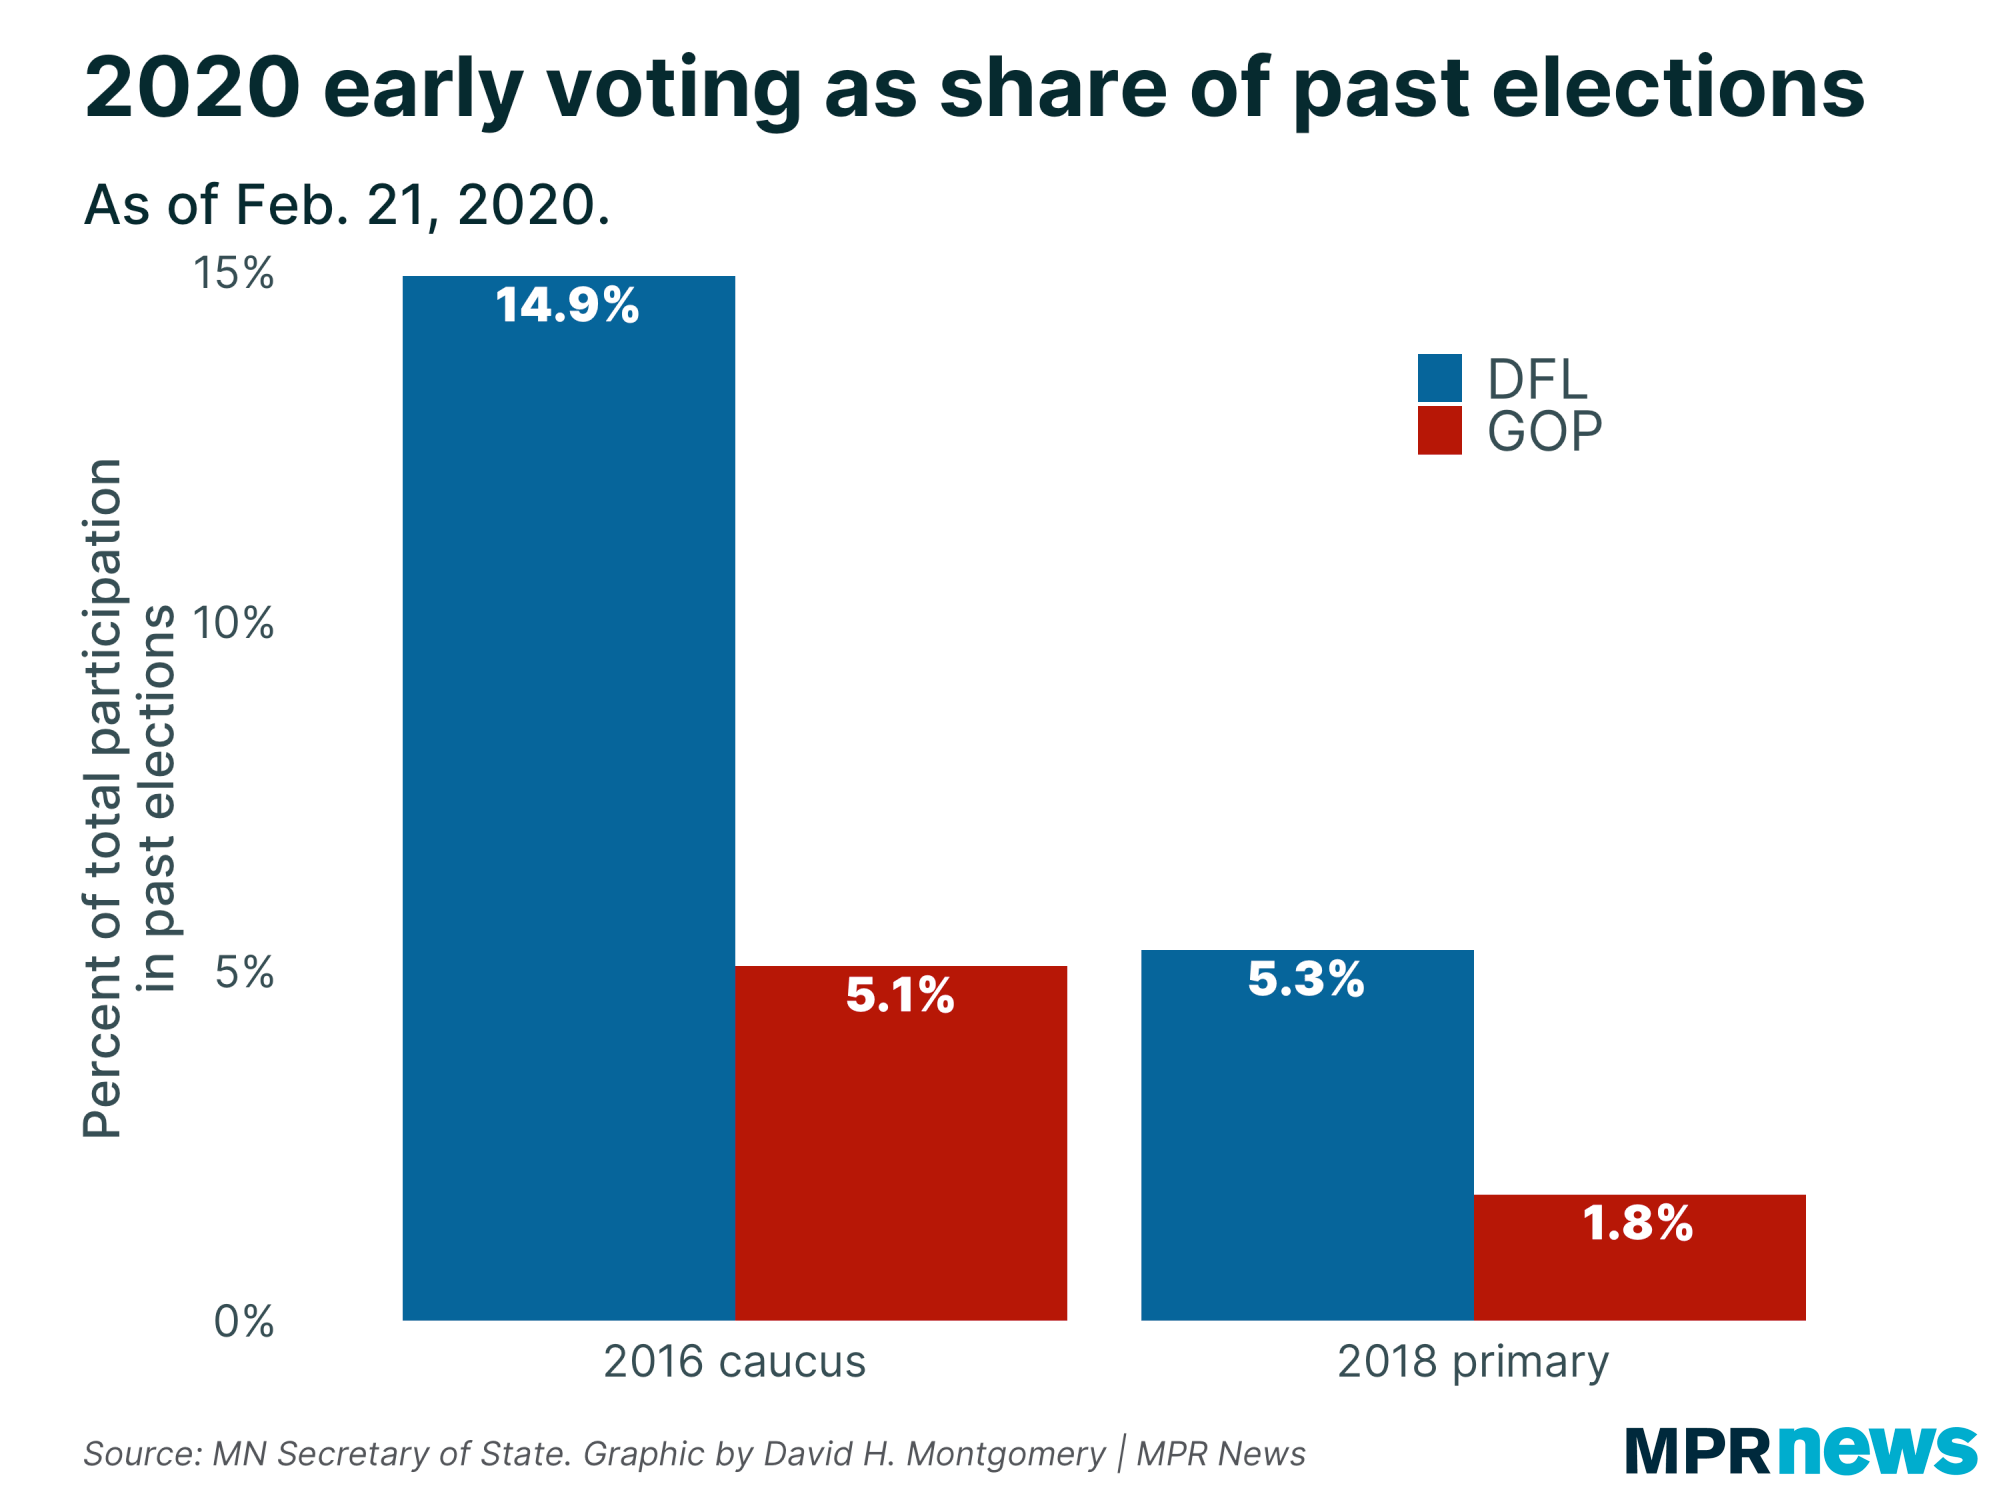 2020 early voting as share of past elections